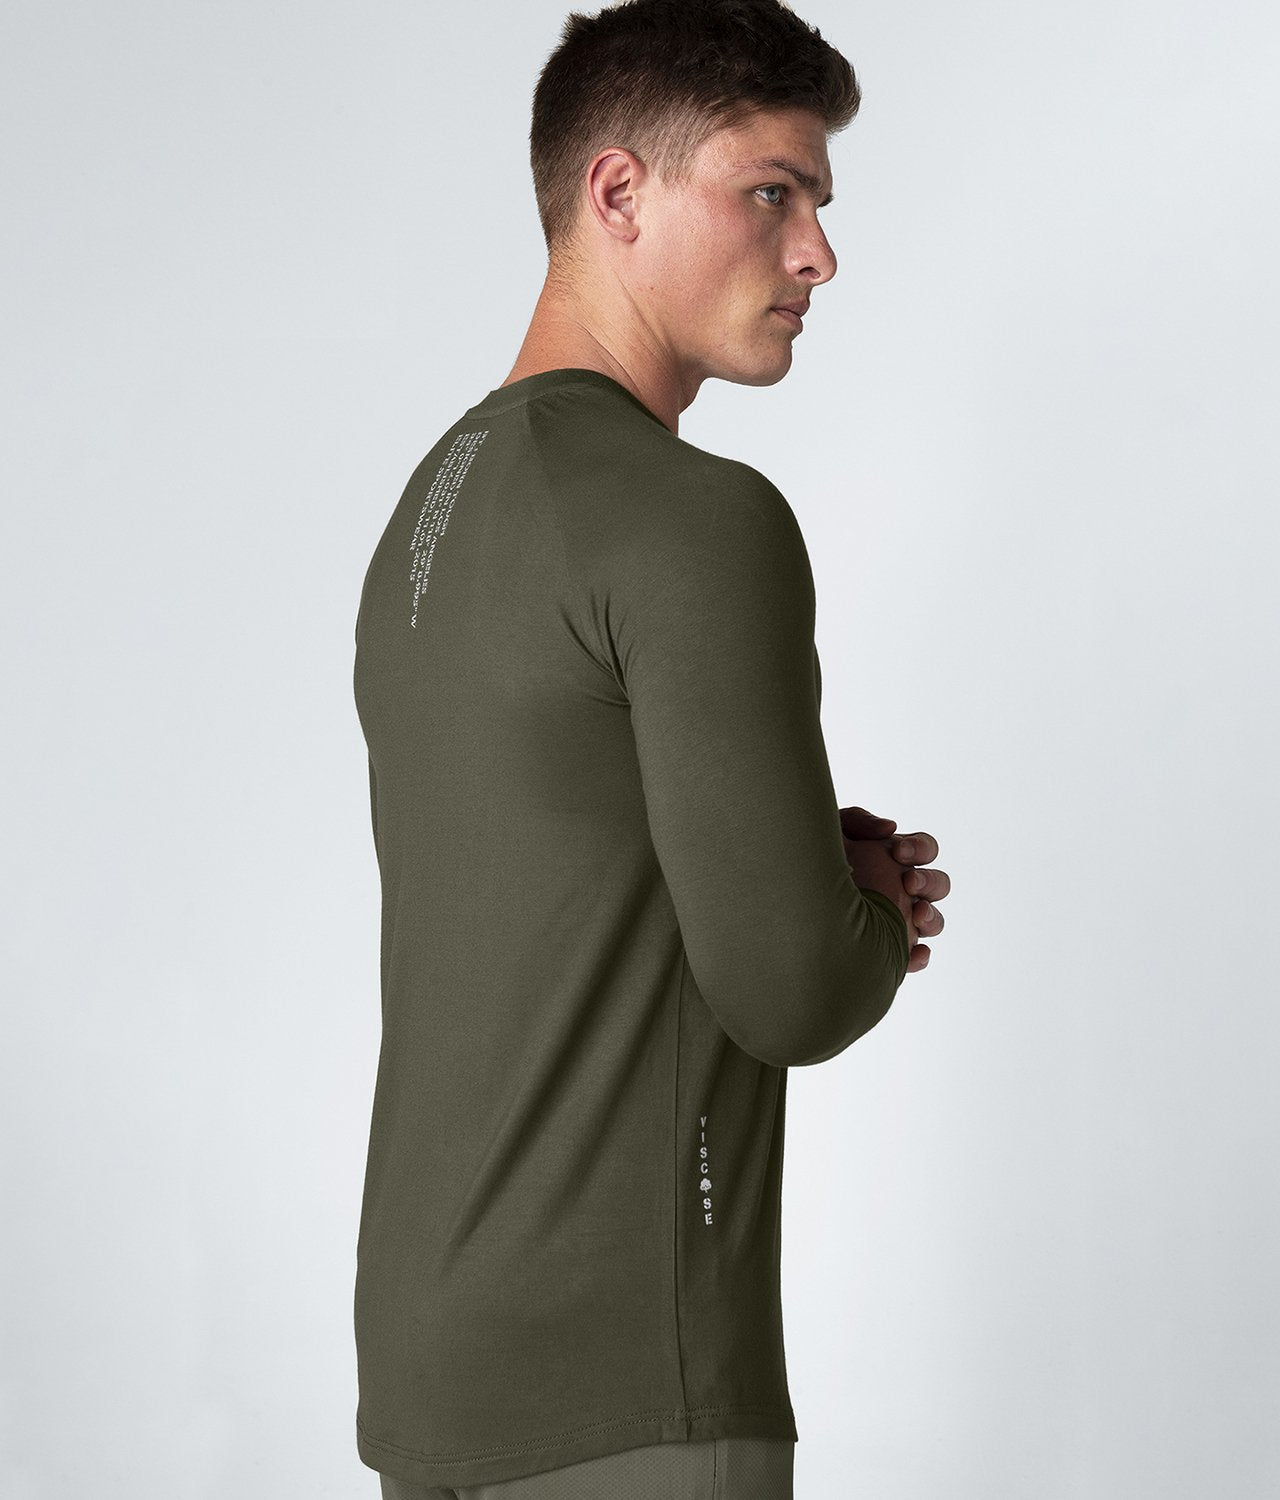 Born Tough United Kingdom Core Fit Extended Scallop Hem Army Green Long Sleeve Gym Workout Shirt For Men